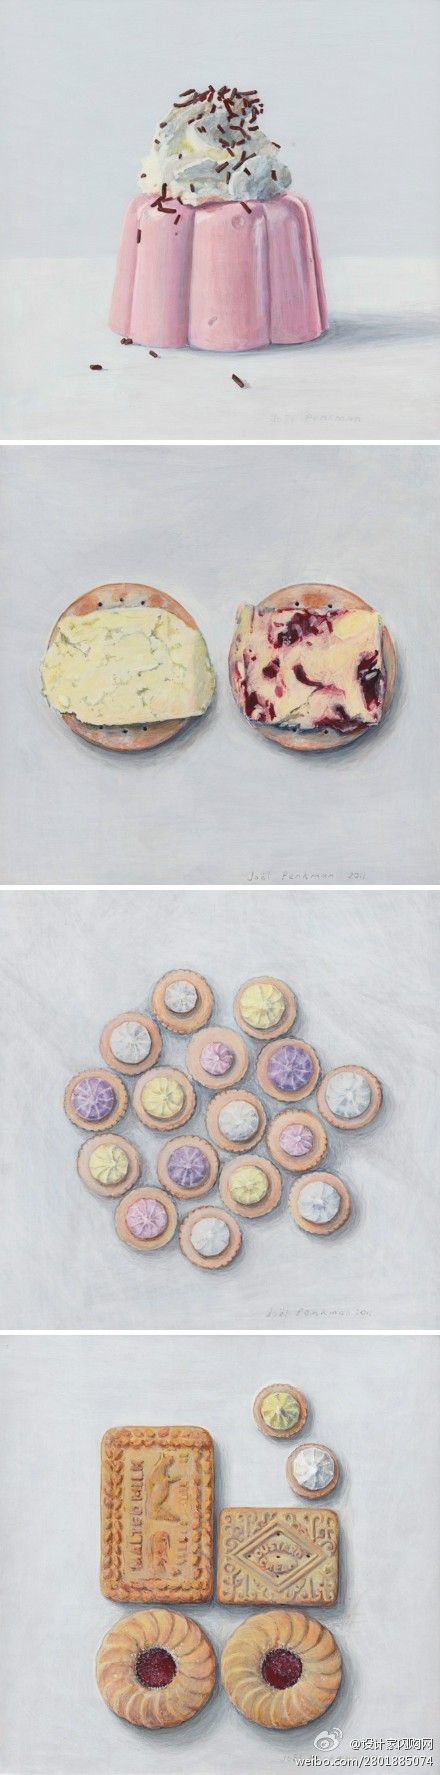 # # New Zealand designer Joel Penkman painted the hand-painted food. via.www.joelpenkman.com